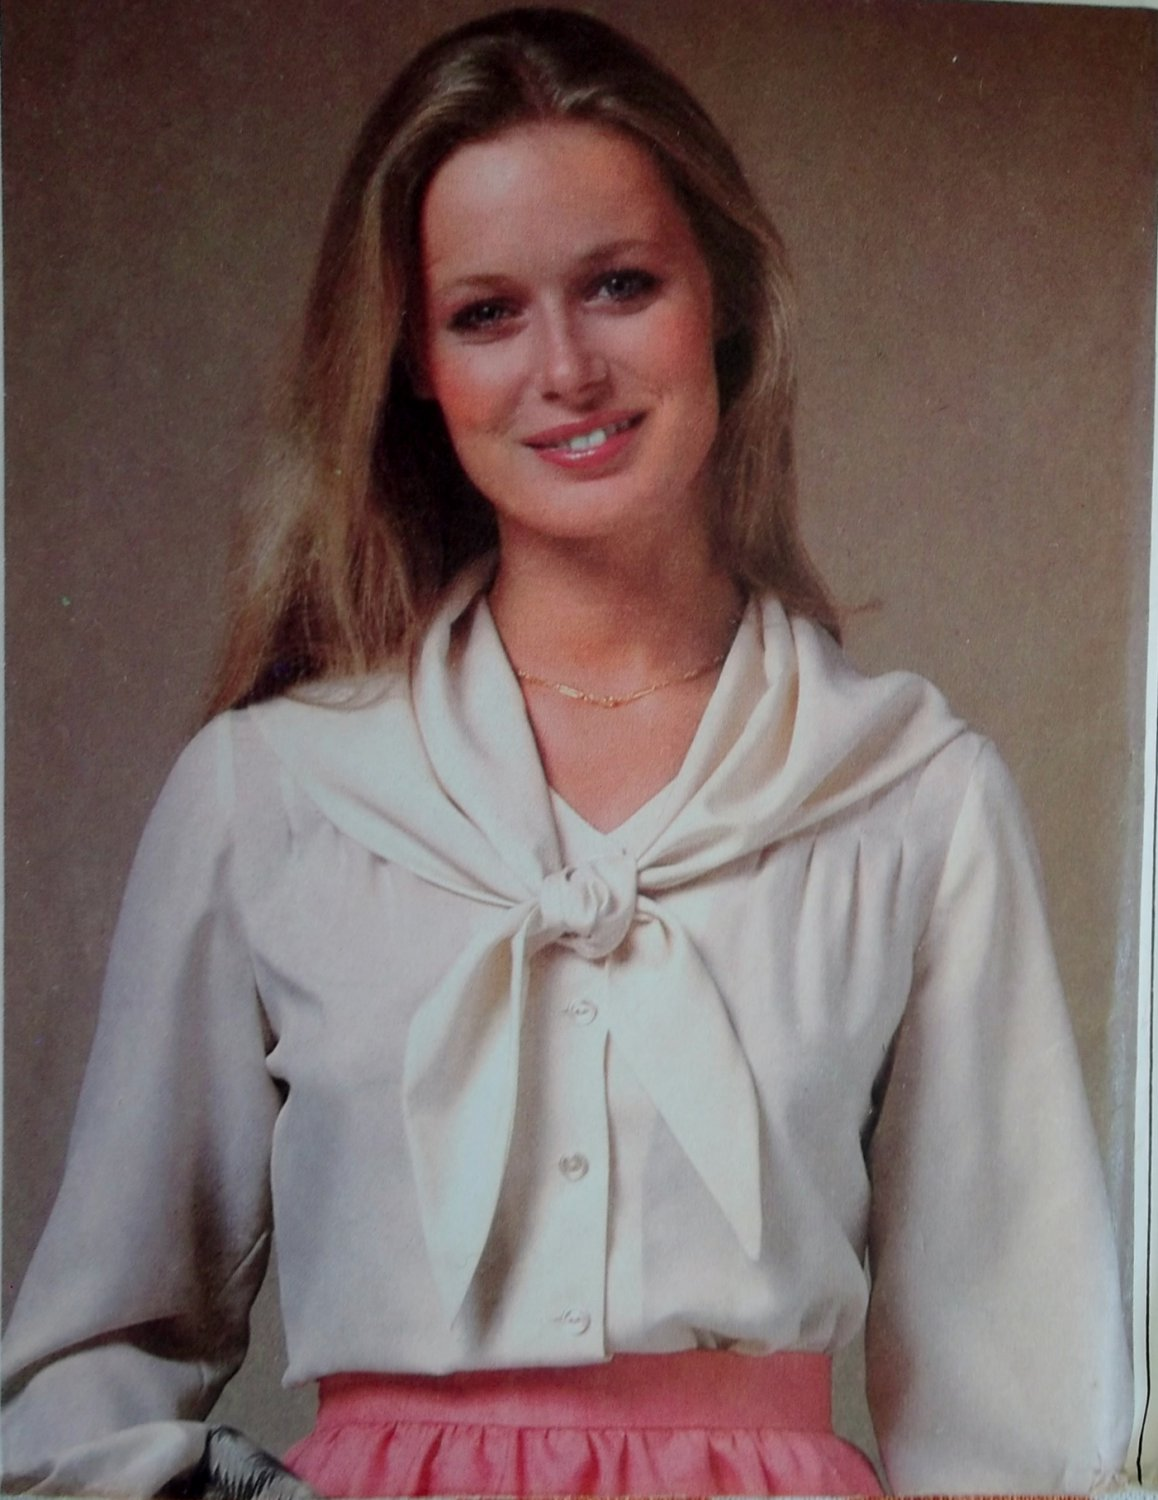 Simplicity 8468 Misses Tucked Blouse and Scarf Sewing Pattern, Sizes 12 14 16, Uncut